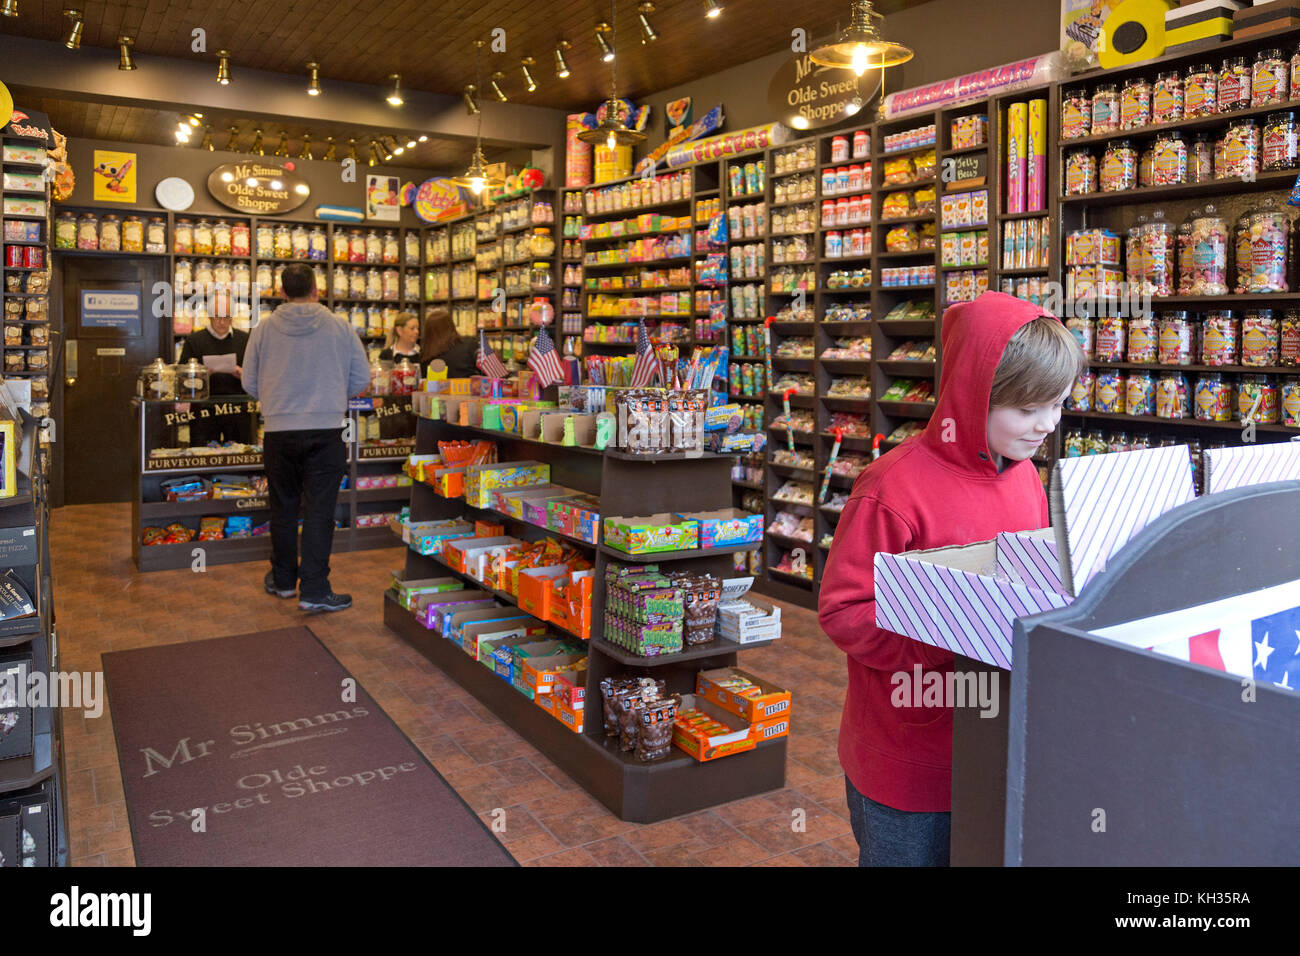 Mr Simms Olde Sweet Shoppe, Stirling, Scotland, Great Britain - Stock Image